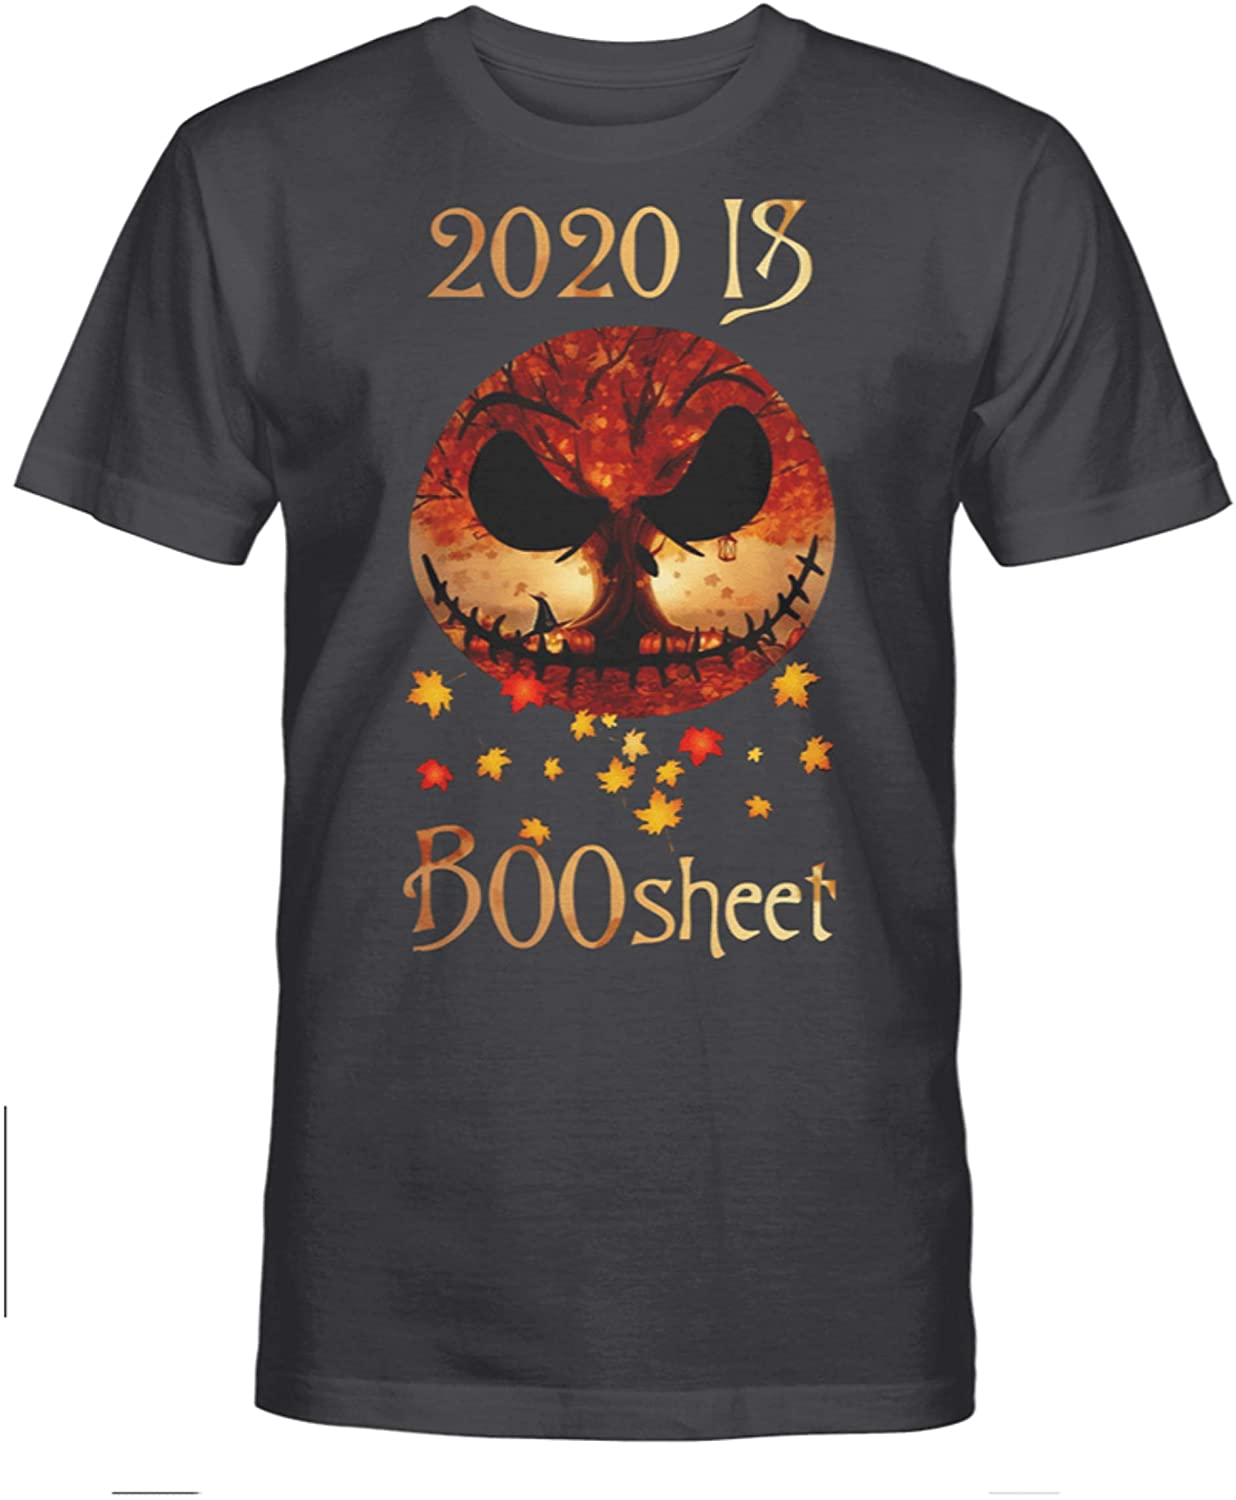 NovaStar T-Shirts Halloween Horror Skeleton 2020 is #Boo Sheet Funny Perfect T-Shirt Gift for Fans